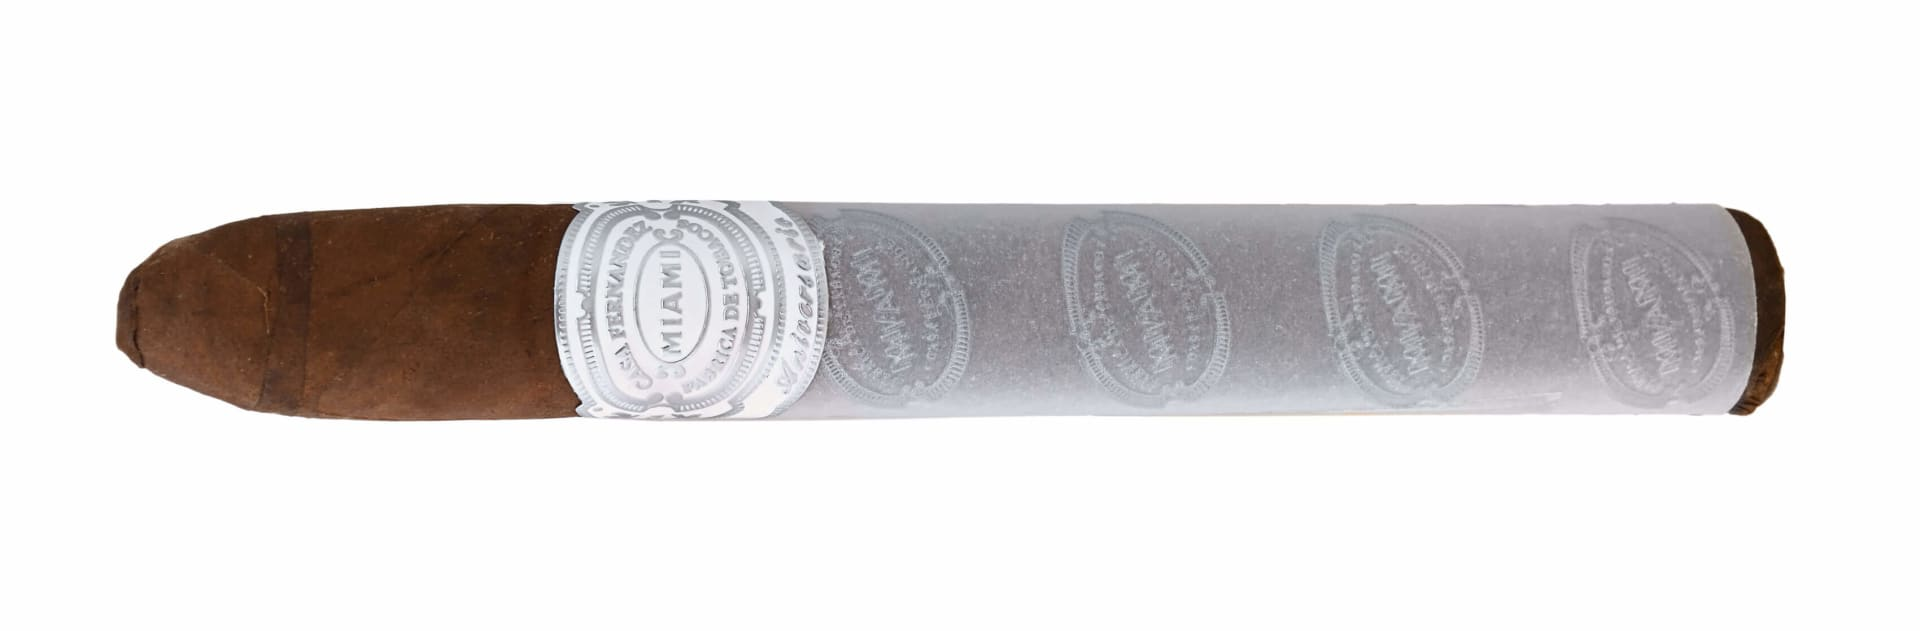 Cigar News: Aganorsa Leaf Announces Casa Fernandez Aniversario Cuban 109 Maduro Featured Image